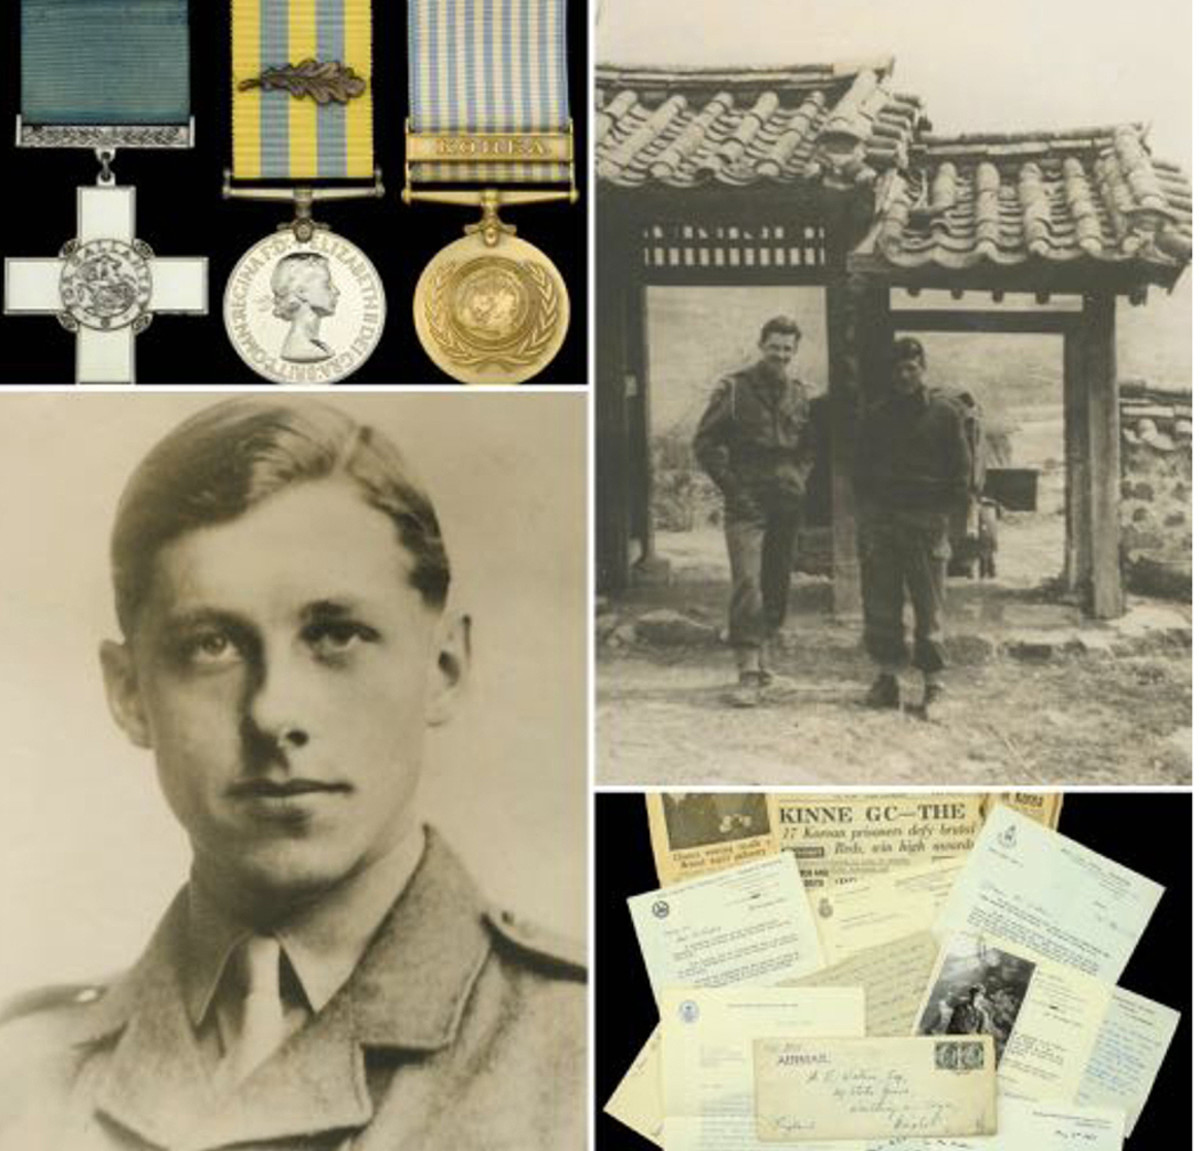 Terence Edward Waters and the George Cross that went for £280,000 at the Dix Noonan Webb Orders, Decorations, Medals and Militaria auction